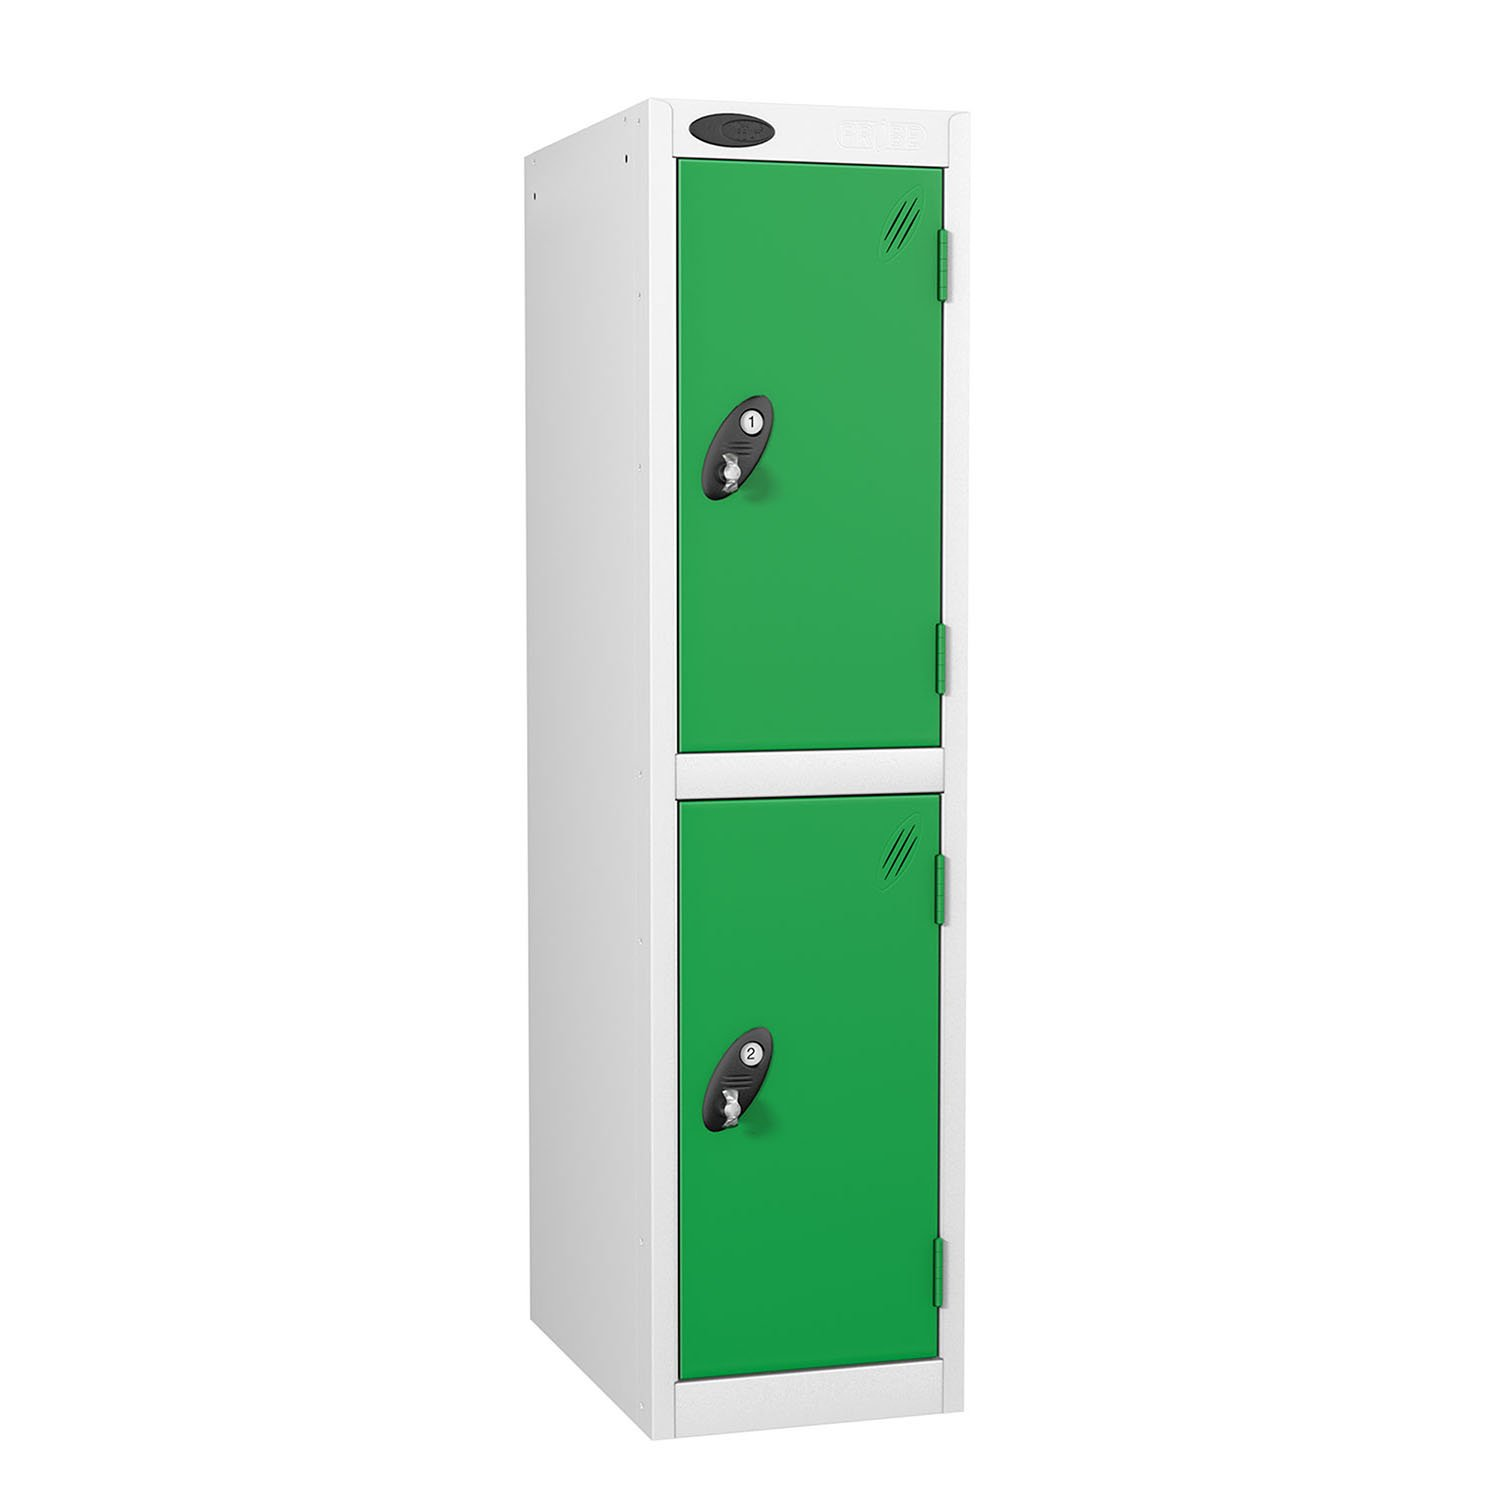 Probe 2 doors low locker in green colour